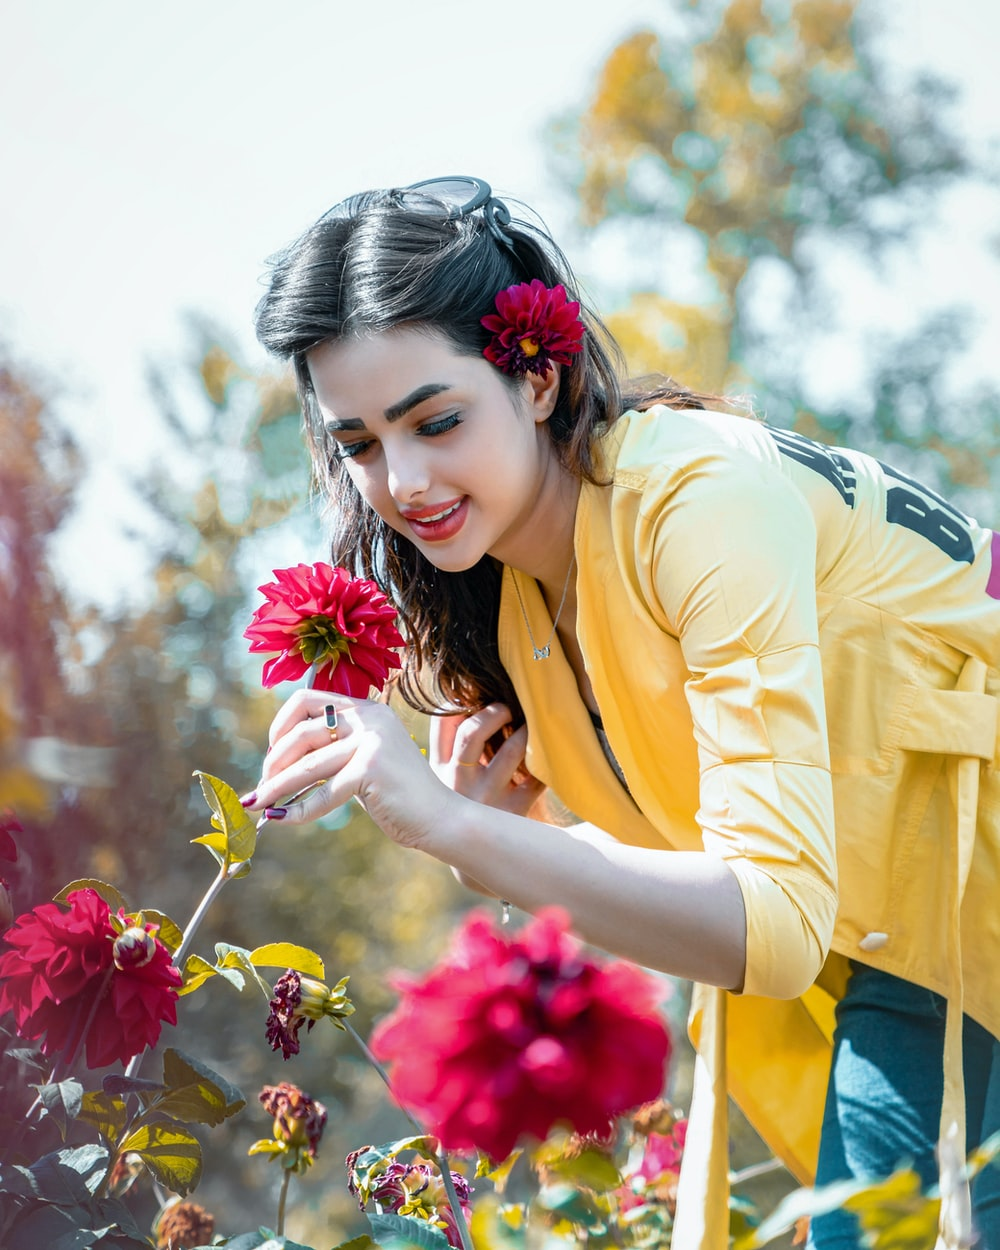 woman in yellow cardigan holding pink flower during daytime